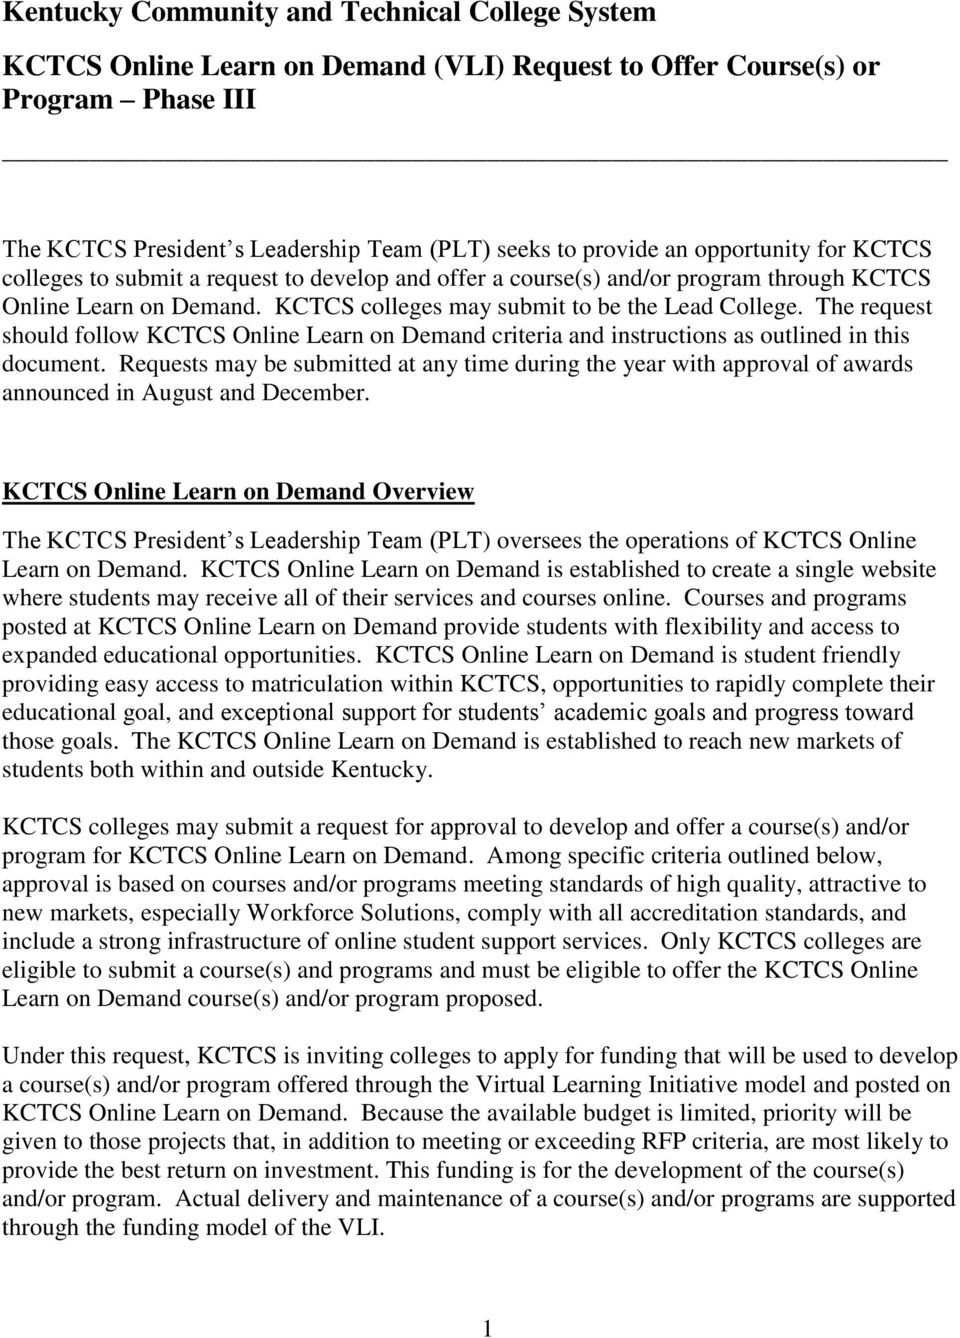 The request should follow KCTCS Online Learn on Demand criteria and instructions as outlined in this document.